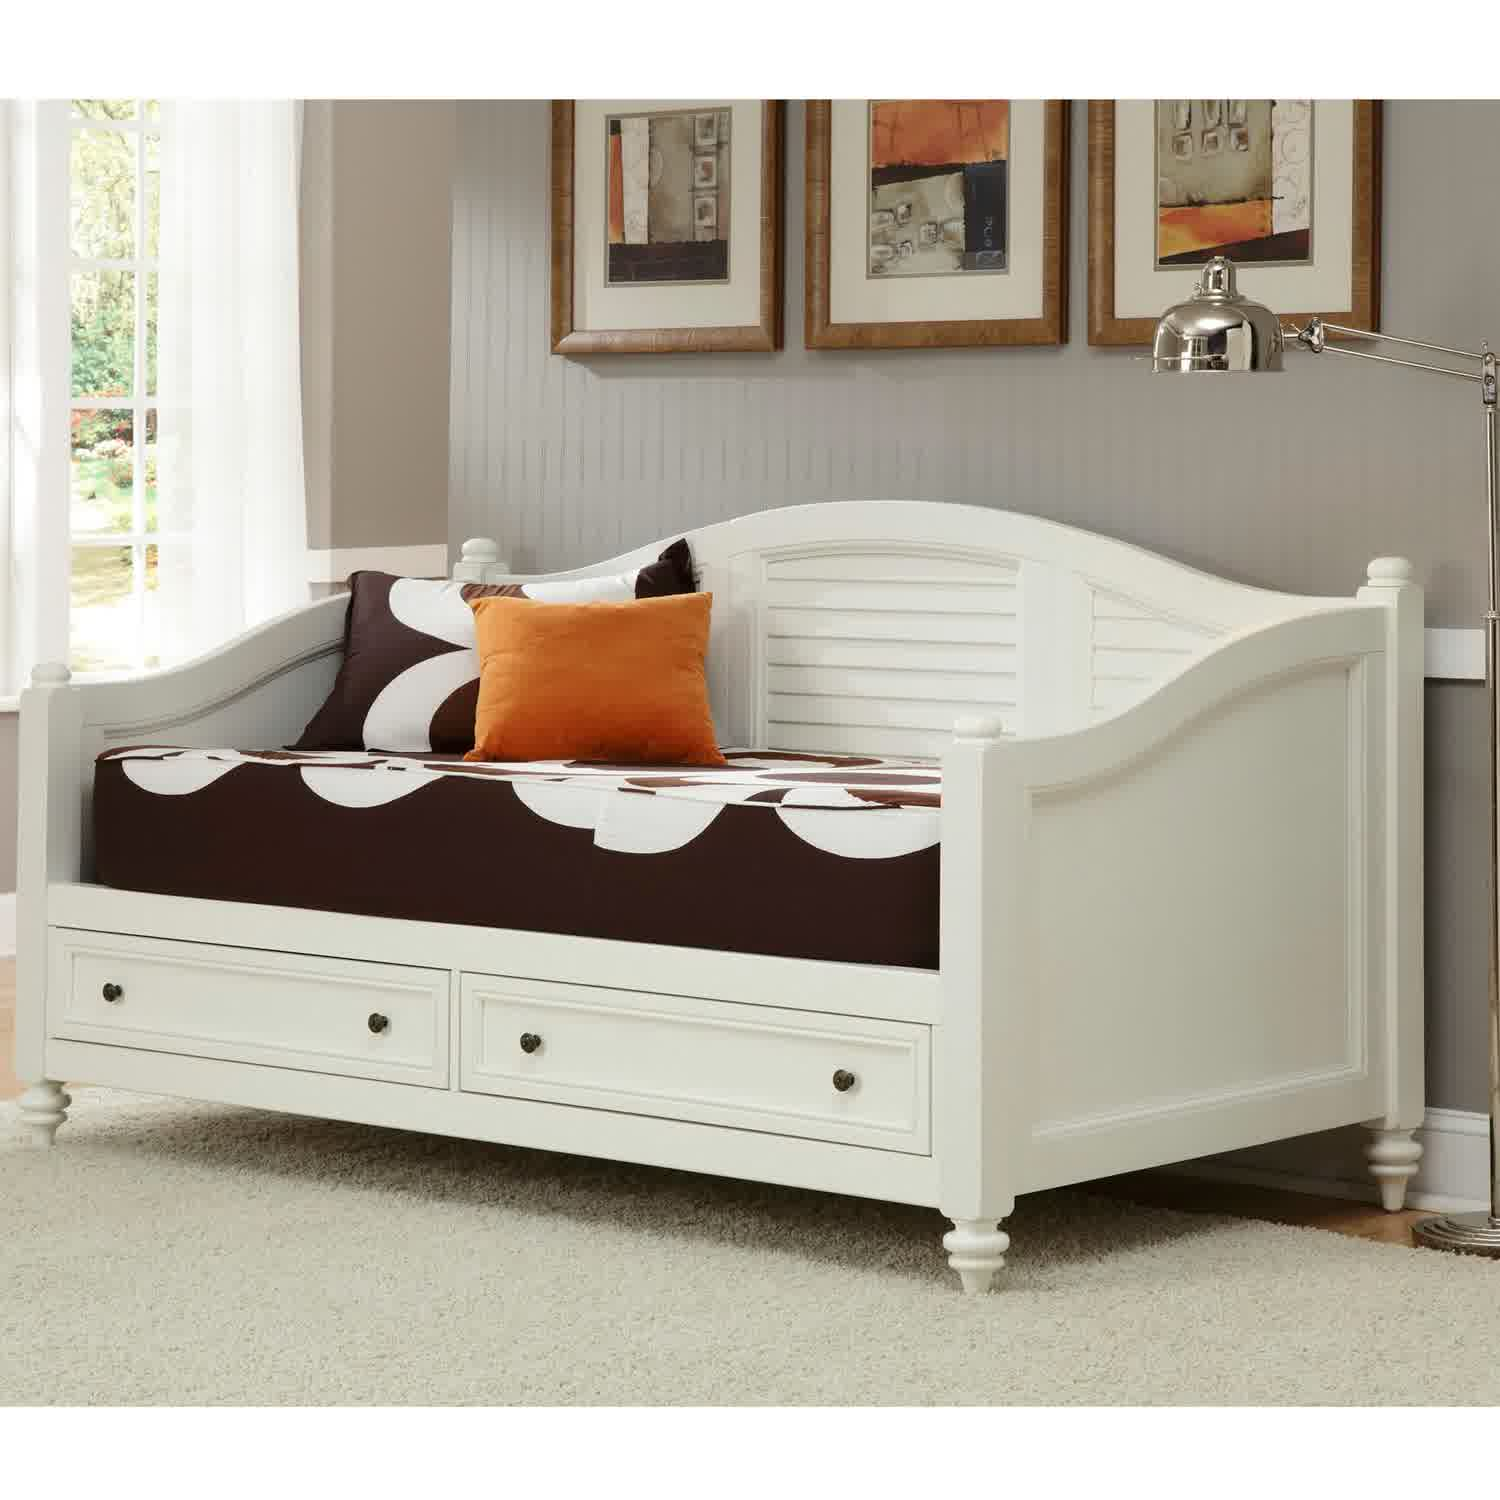 Daybed Full Size Frame Variants Of Design And Finishing